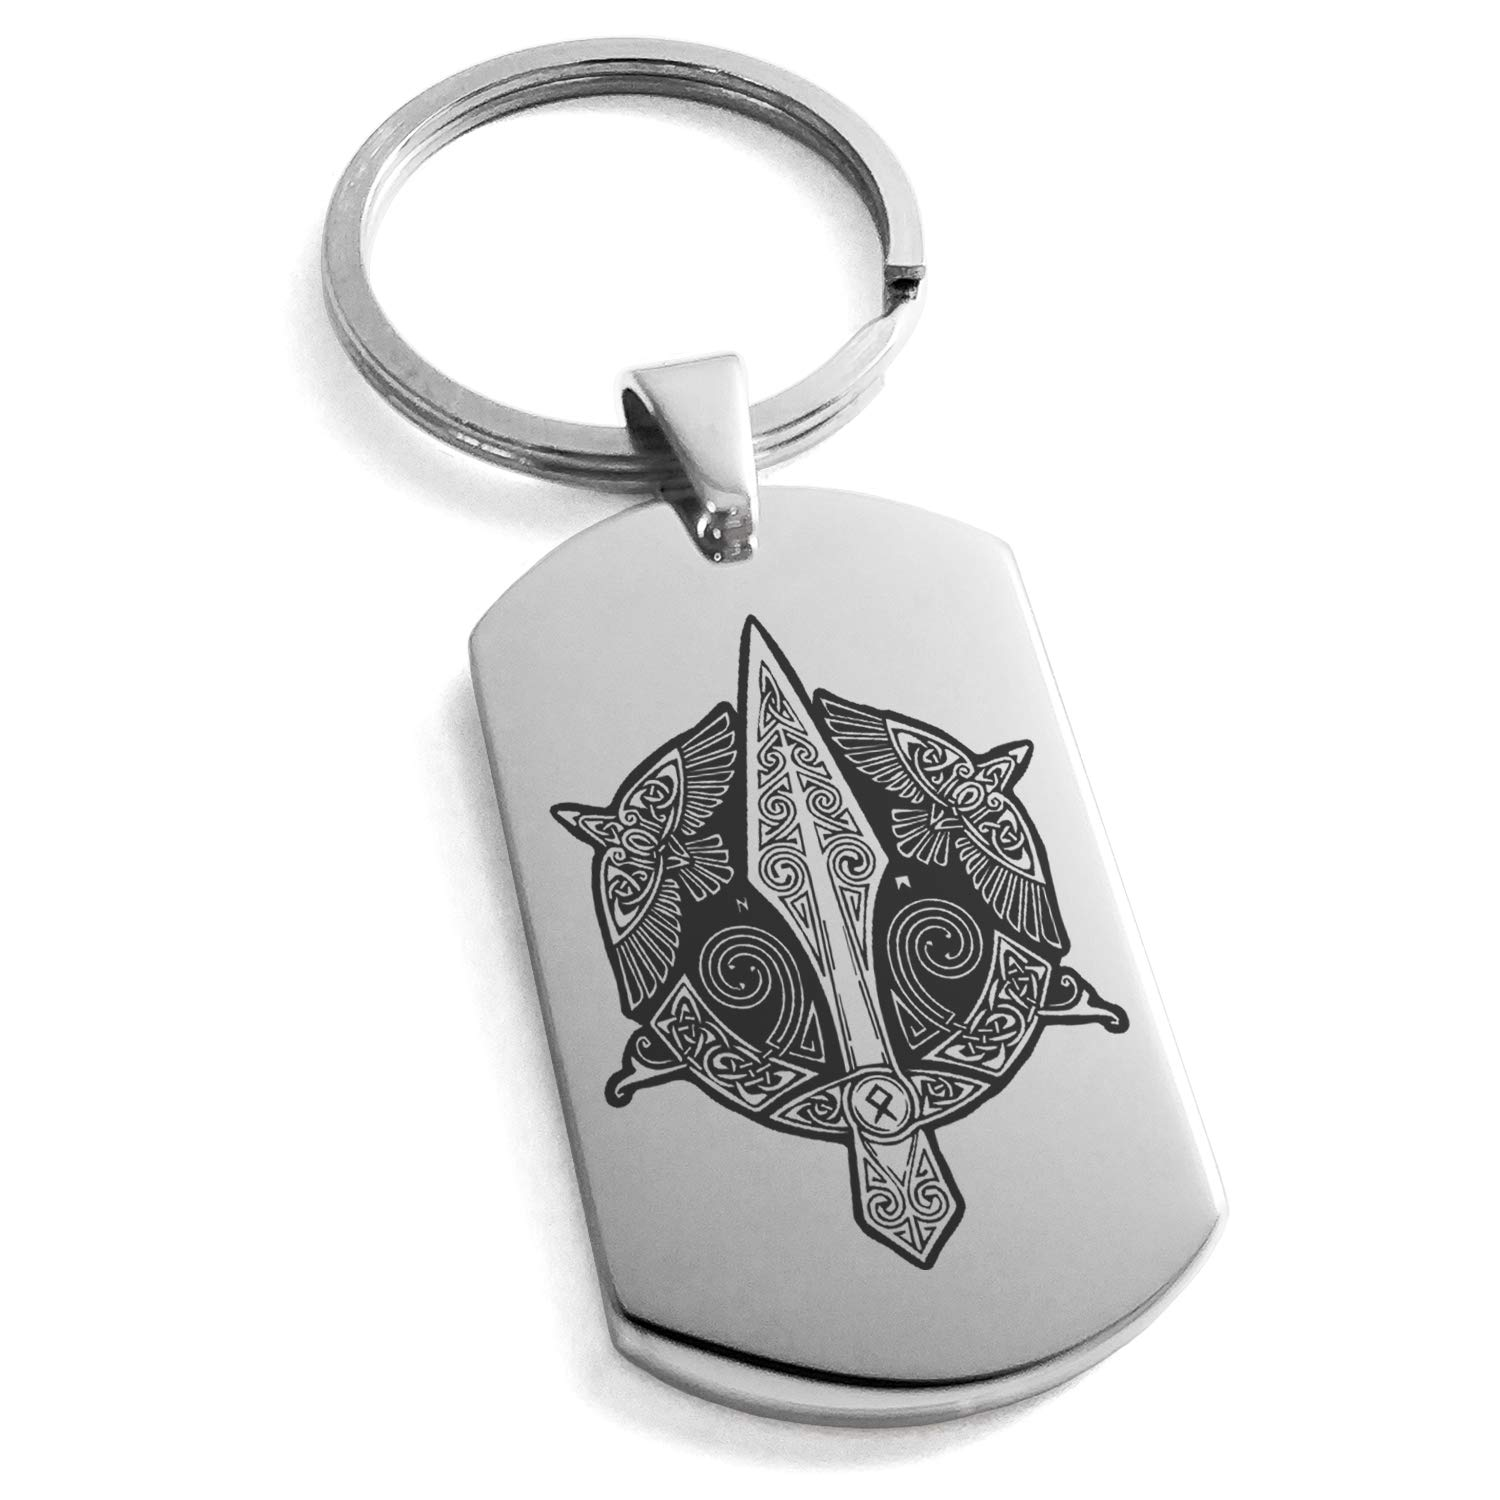 Tioneer Stainless Steel Gungnir Odin's Spear Viking Norse Symbol Engraved Dog Tag Keychain Keyring